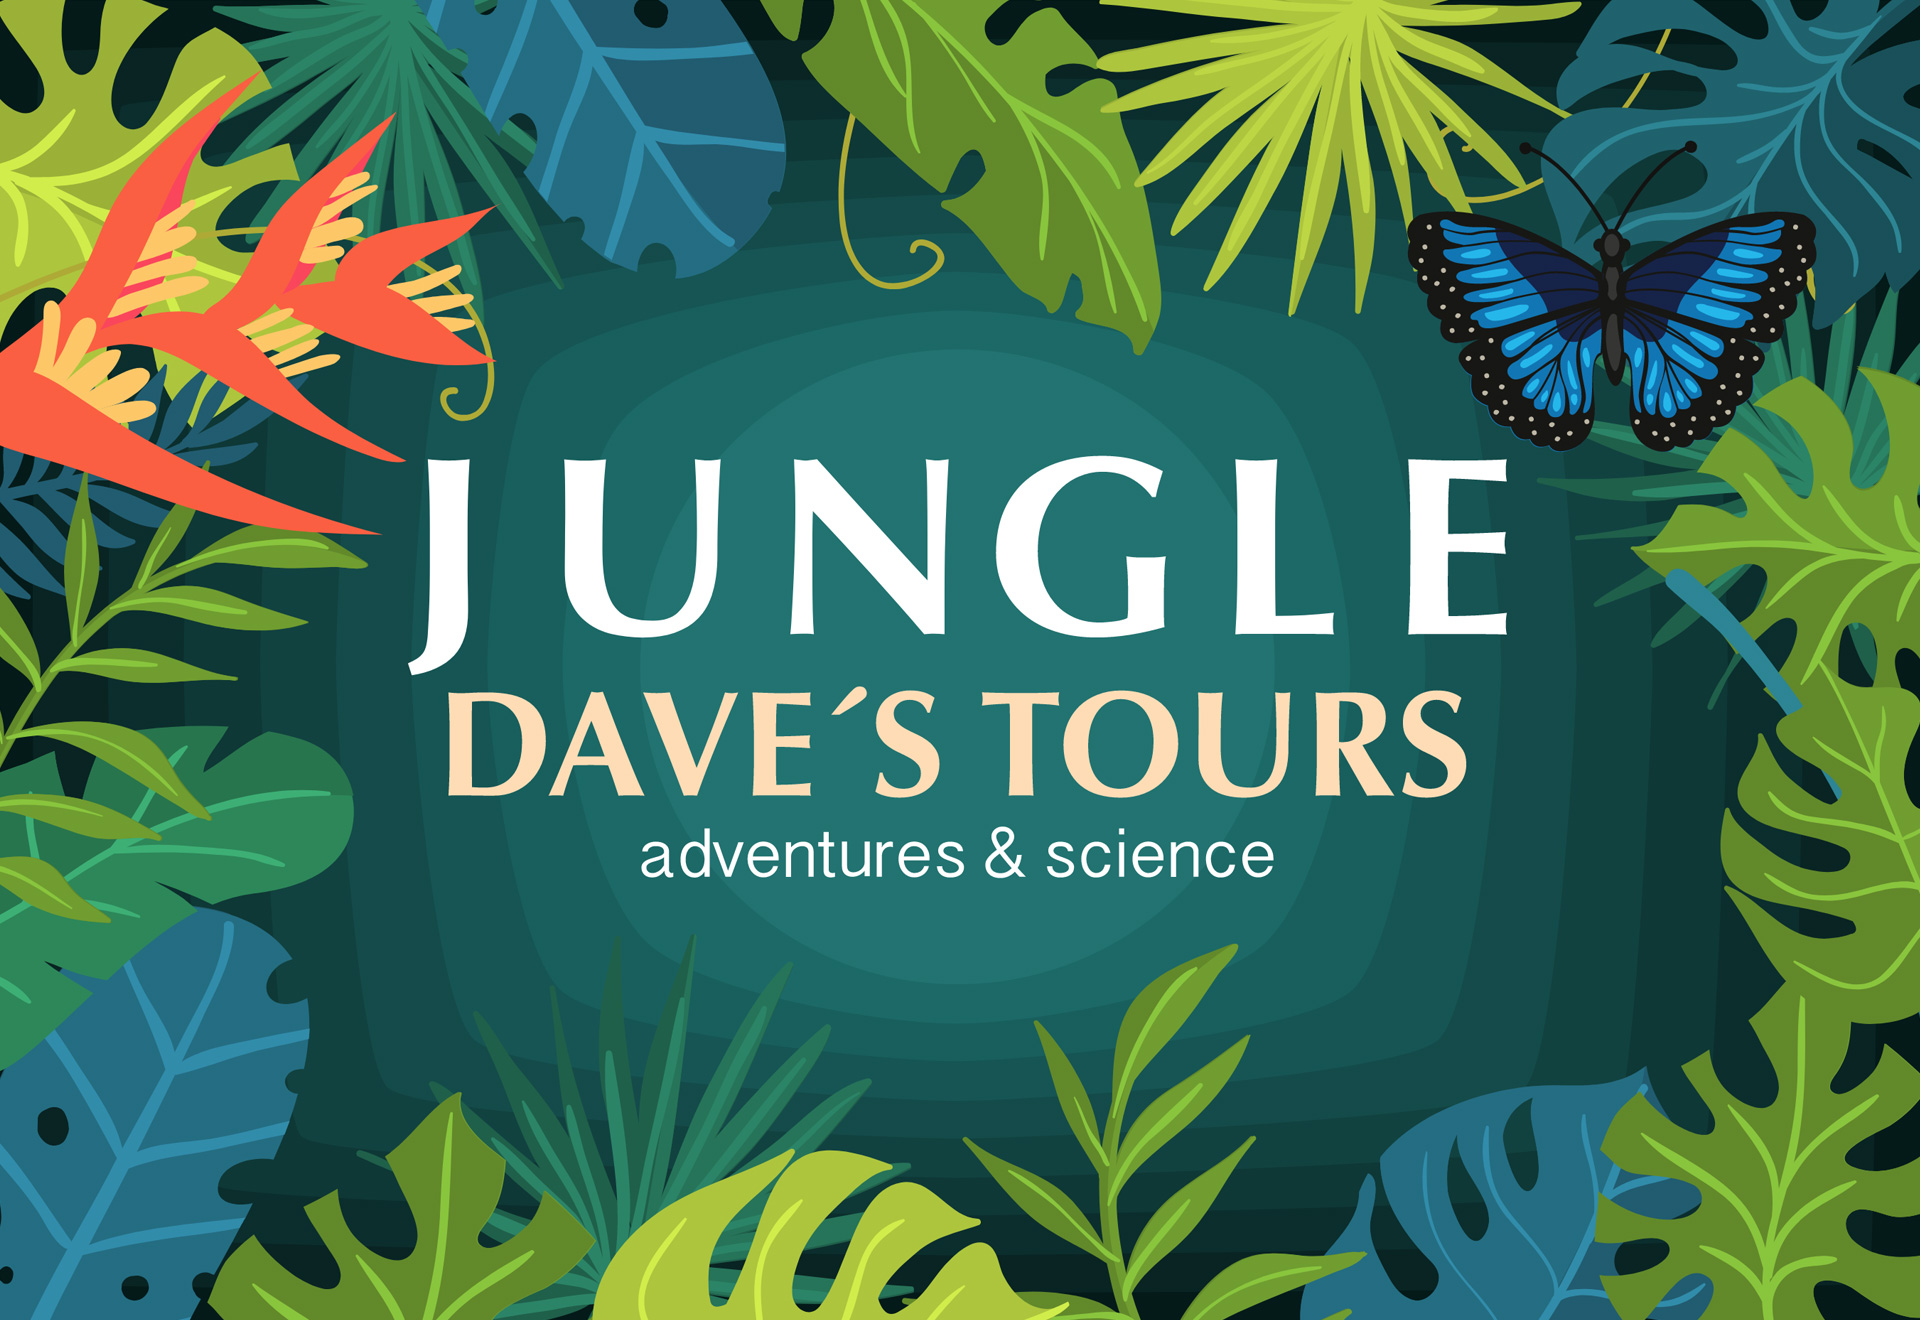 Jungle Dave's Tours